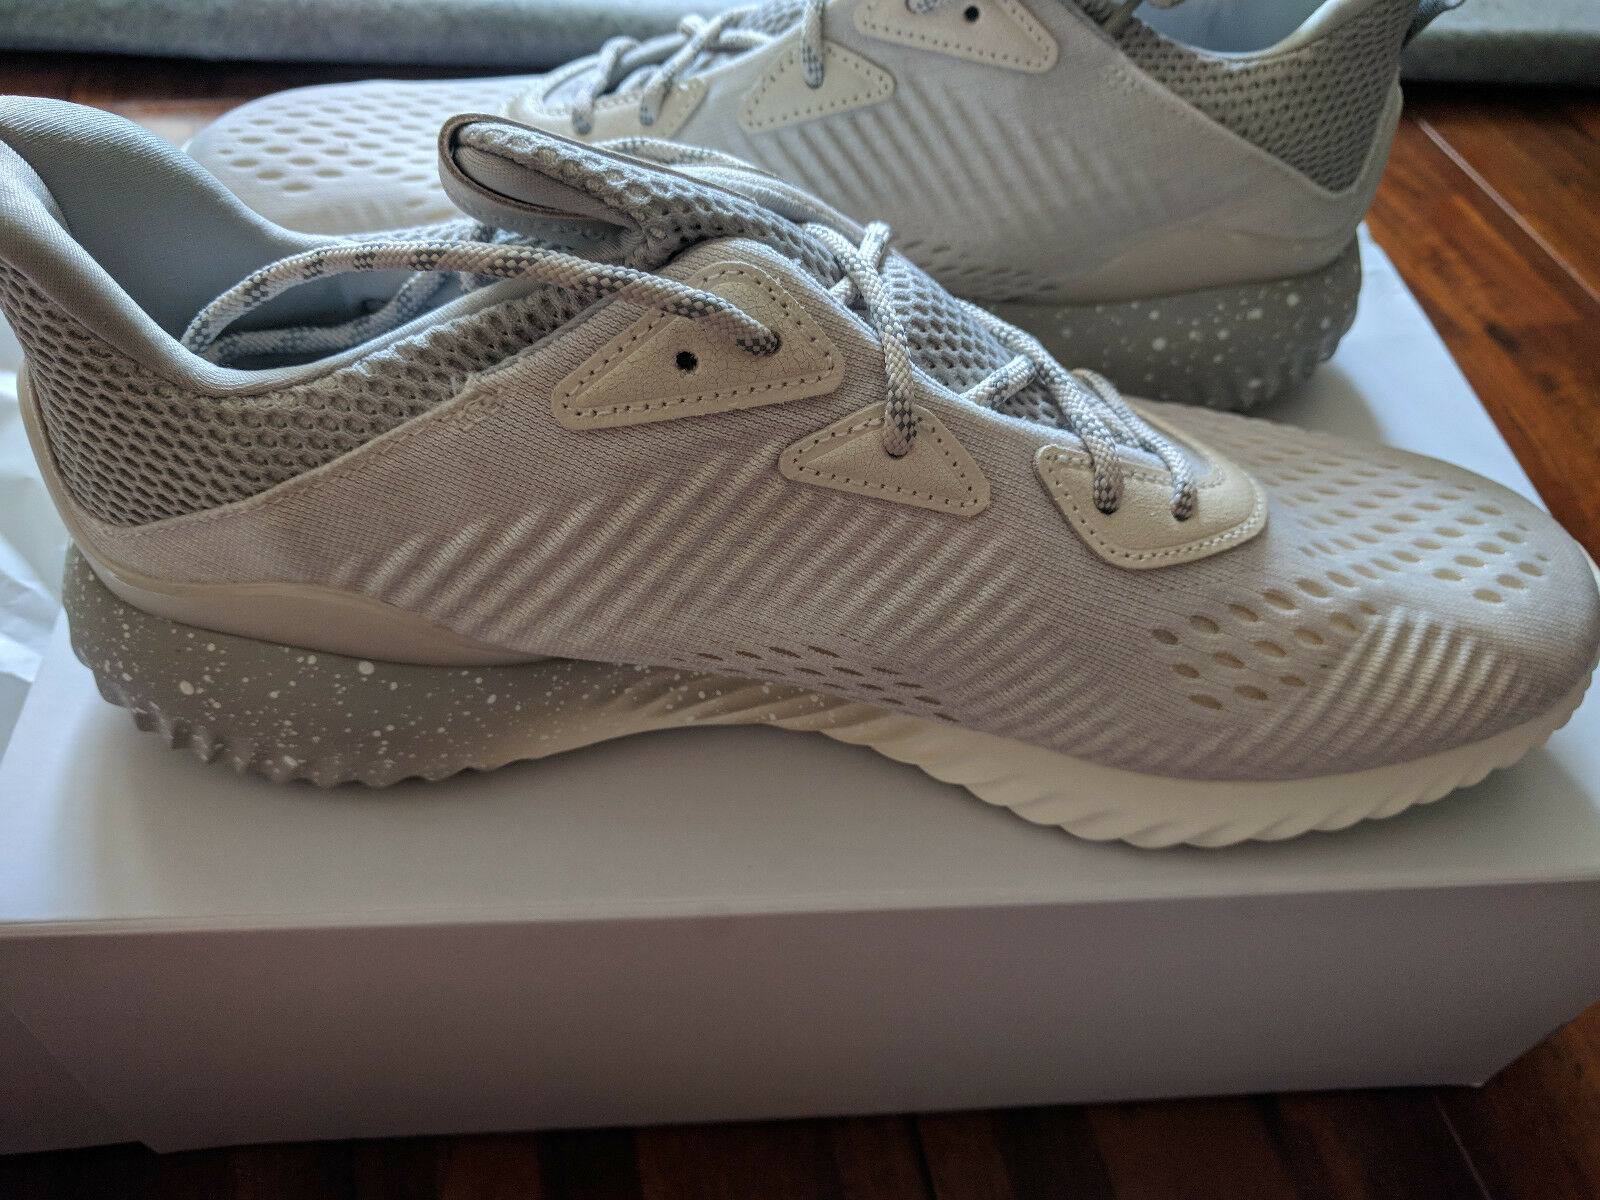 Adidas x Reigning Champ Alphabounce 11.5